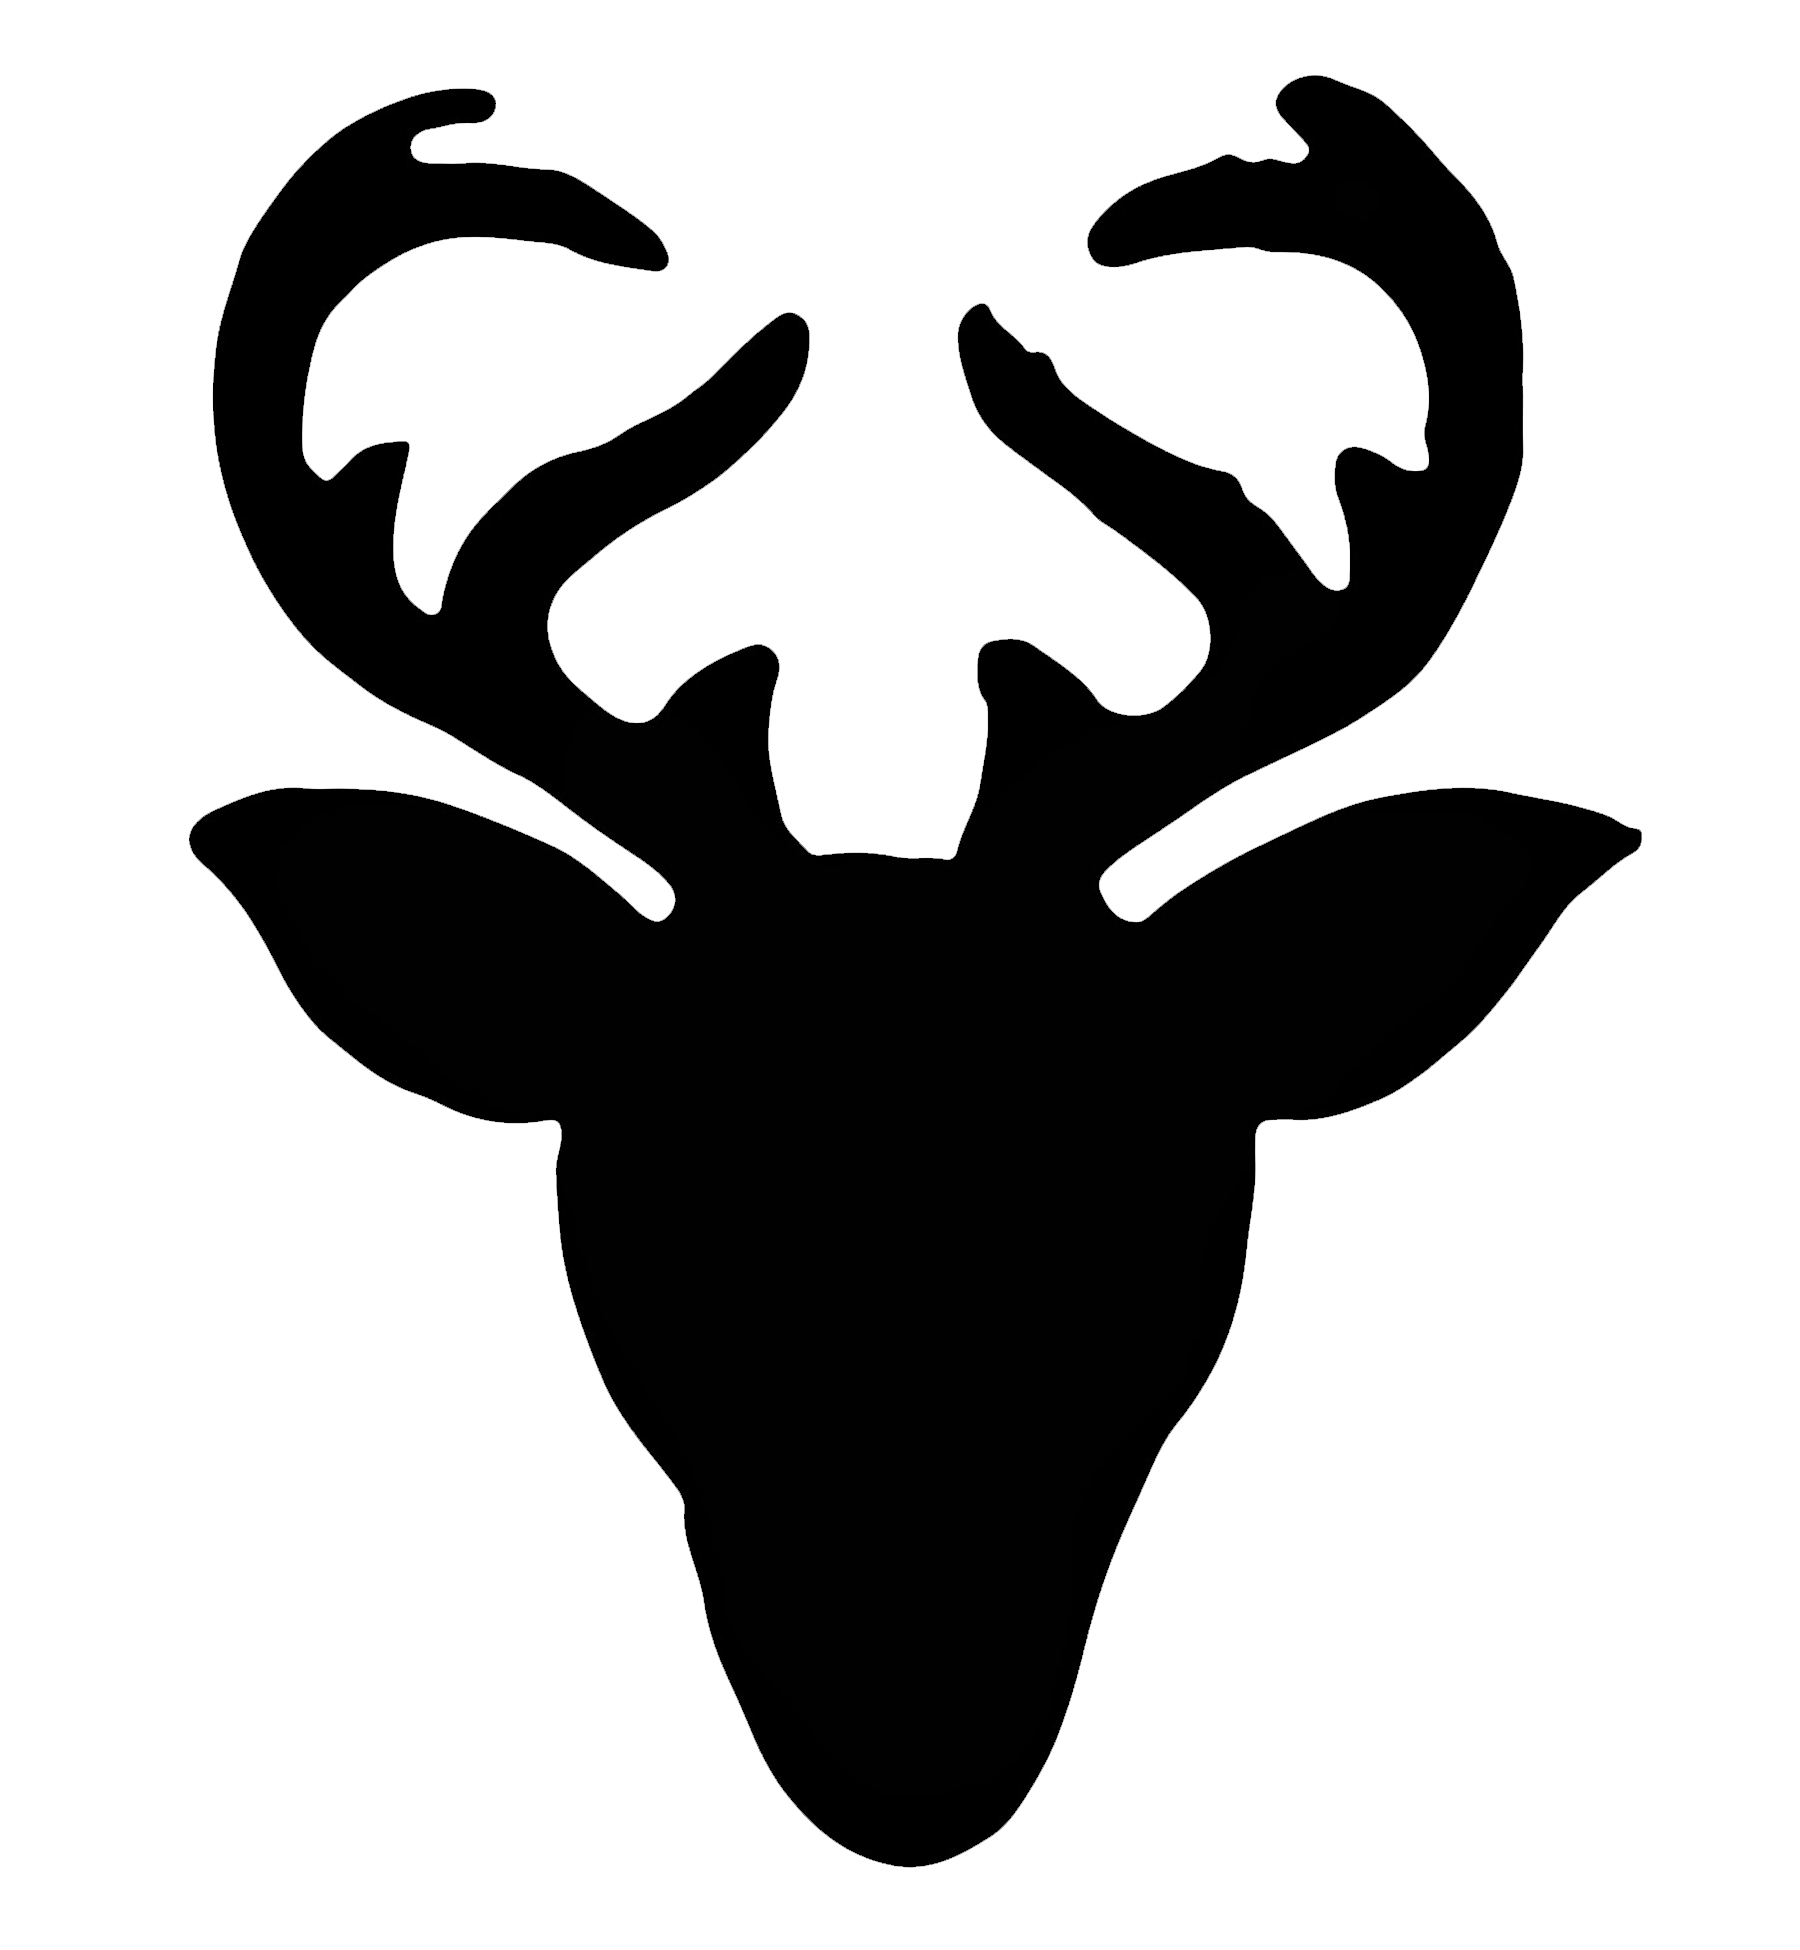 Deer head silhouette png. At getdrawings com free